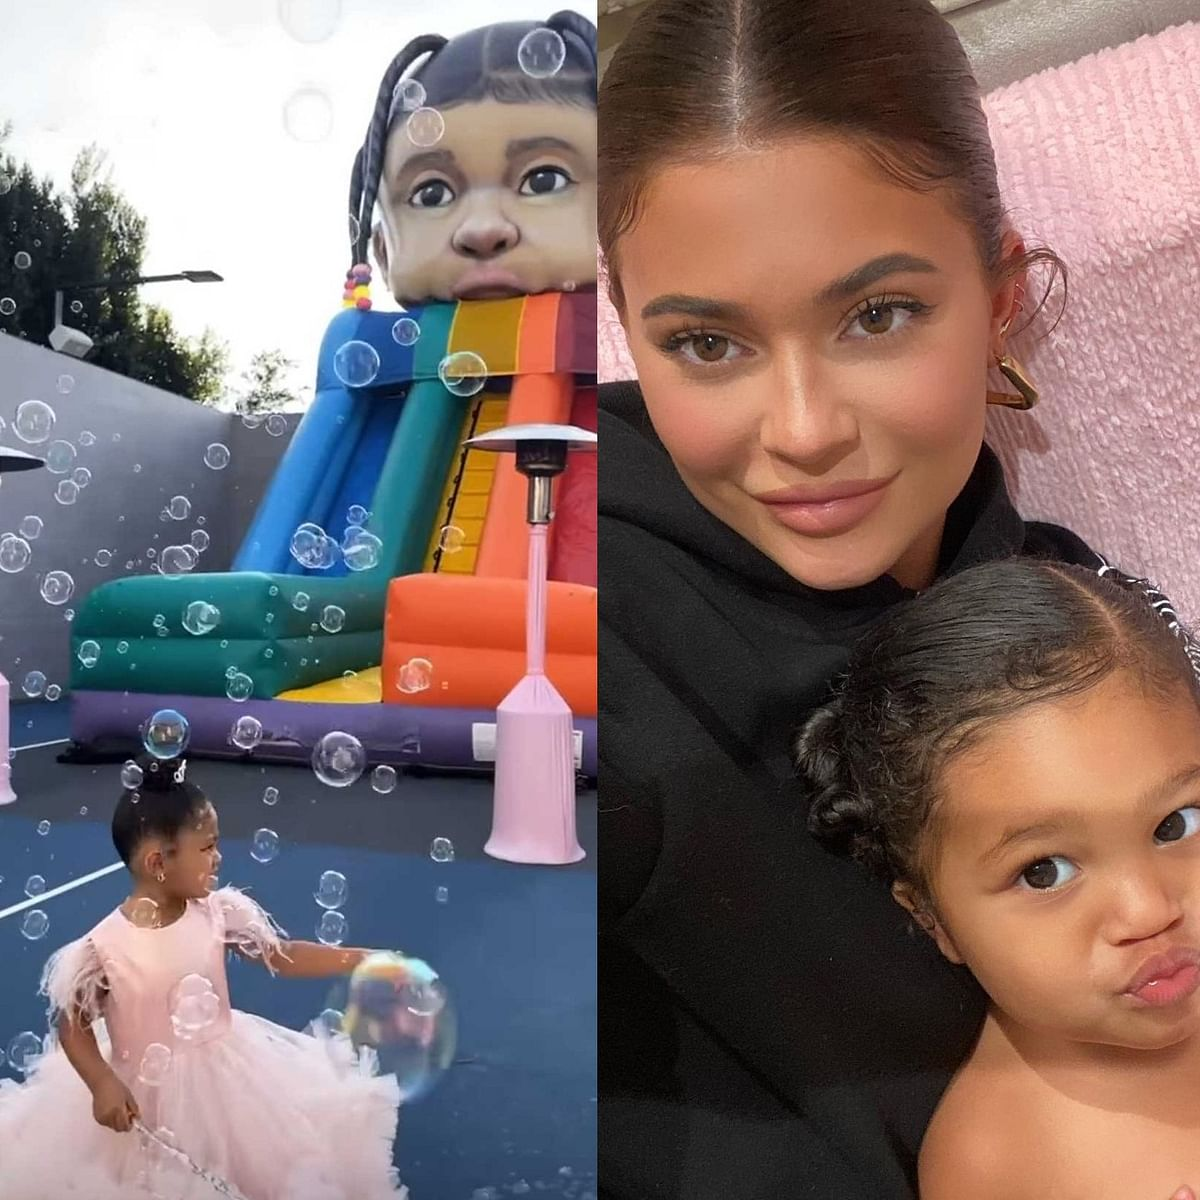 Inside Pics: Kylie Jenner's daughter Stormi turns 3; here's how the billionaire celebrated it